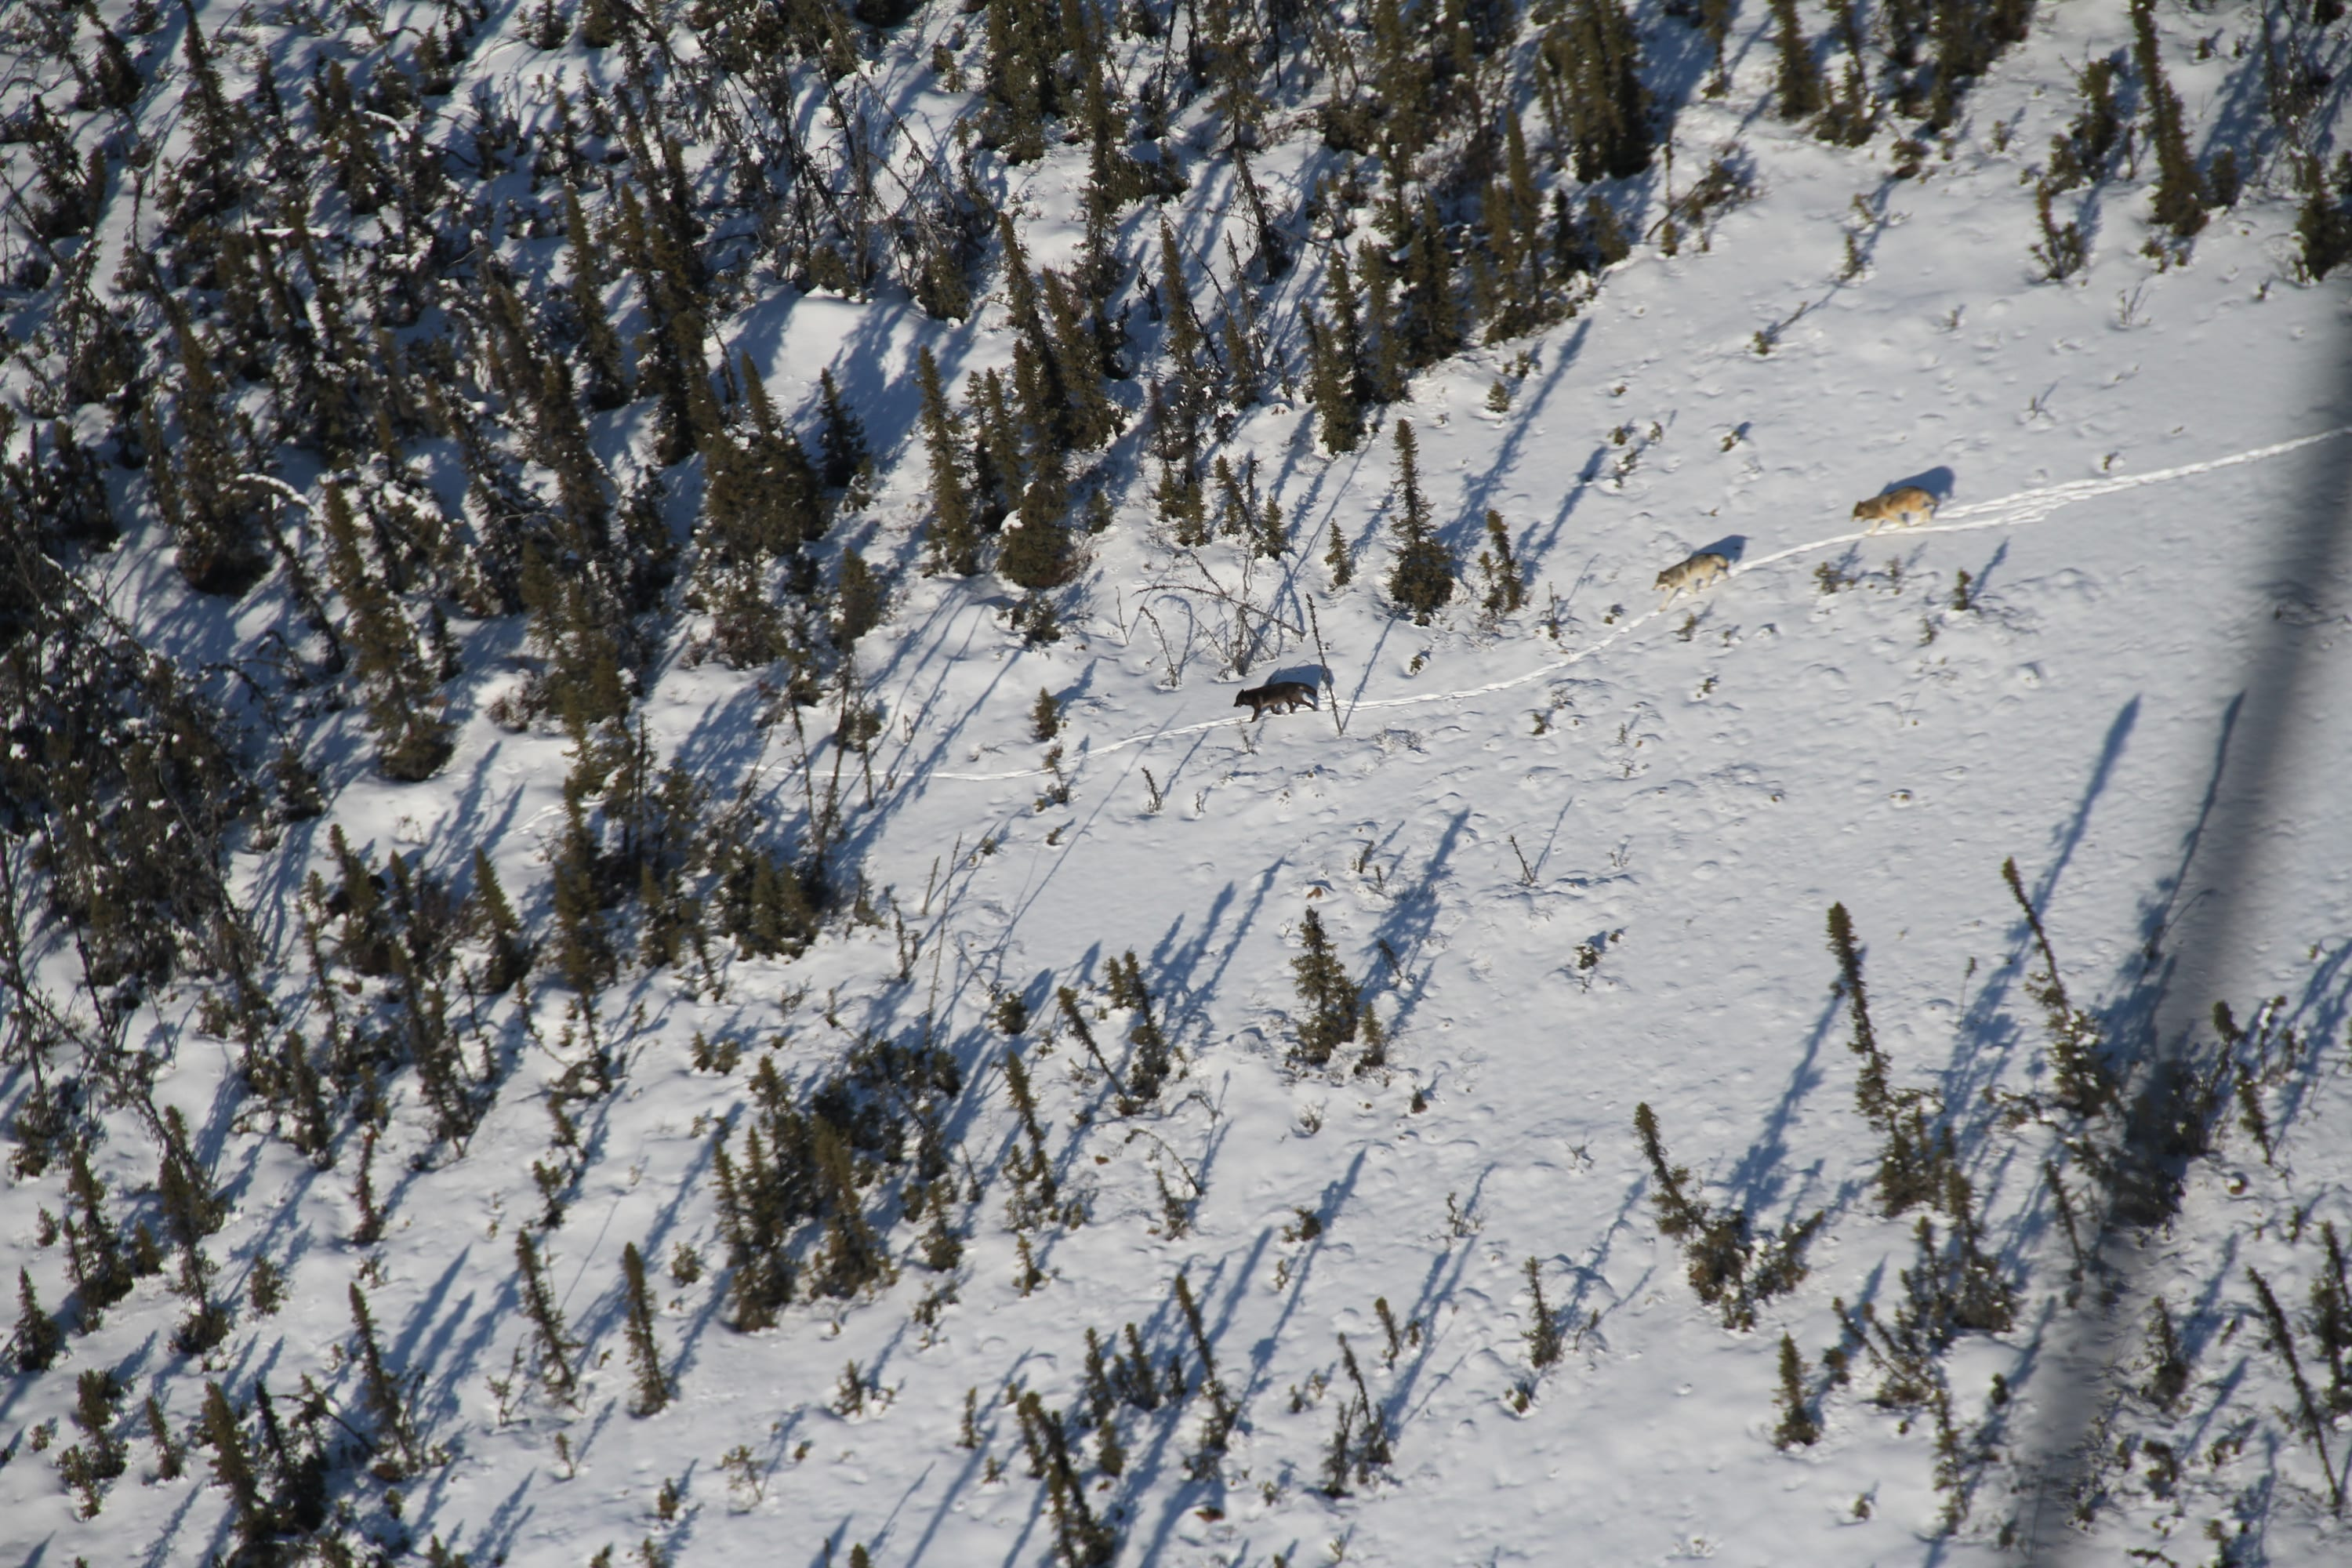 Biologists tracked wolves from above to acquire specimens for a wolf diet study in Lake Clark National Park and Preserve (Photo by Buck Mangipane / National Park Service).